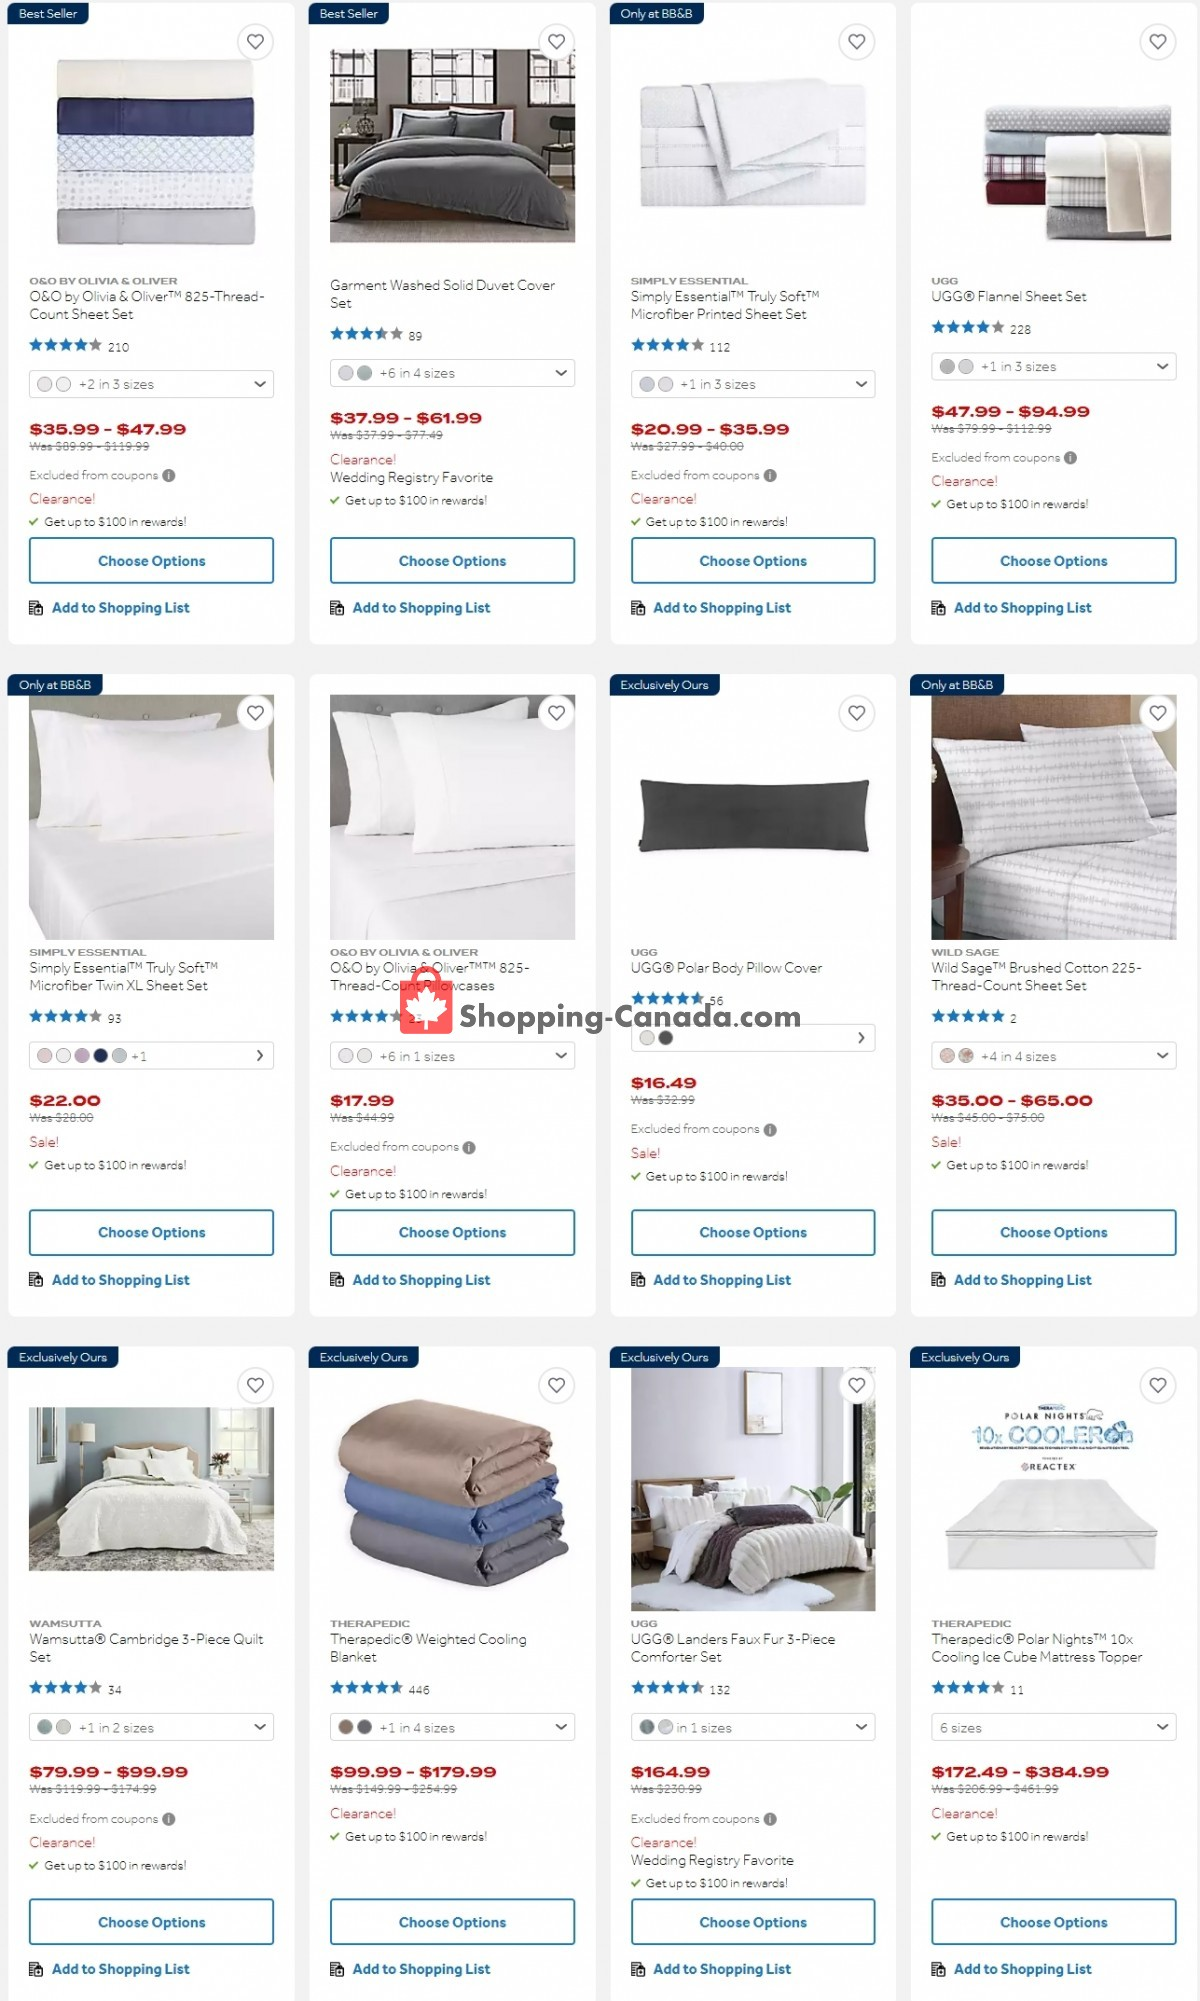 Flyer Bed Bath & Beyond Canada - from Monday September 13, 2021 to Sunday September 19, 2021